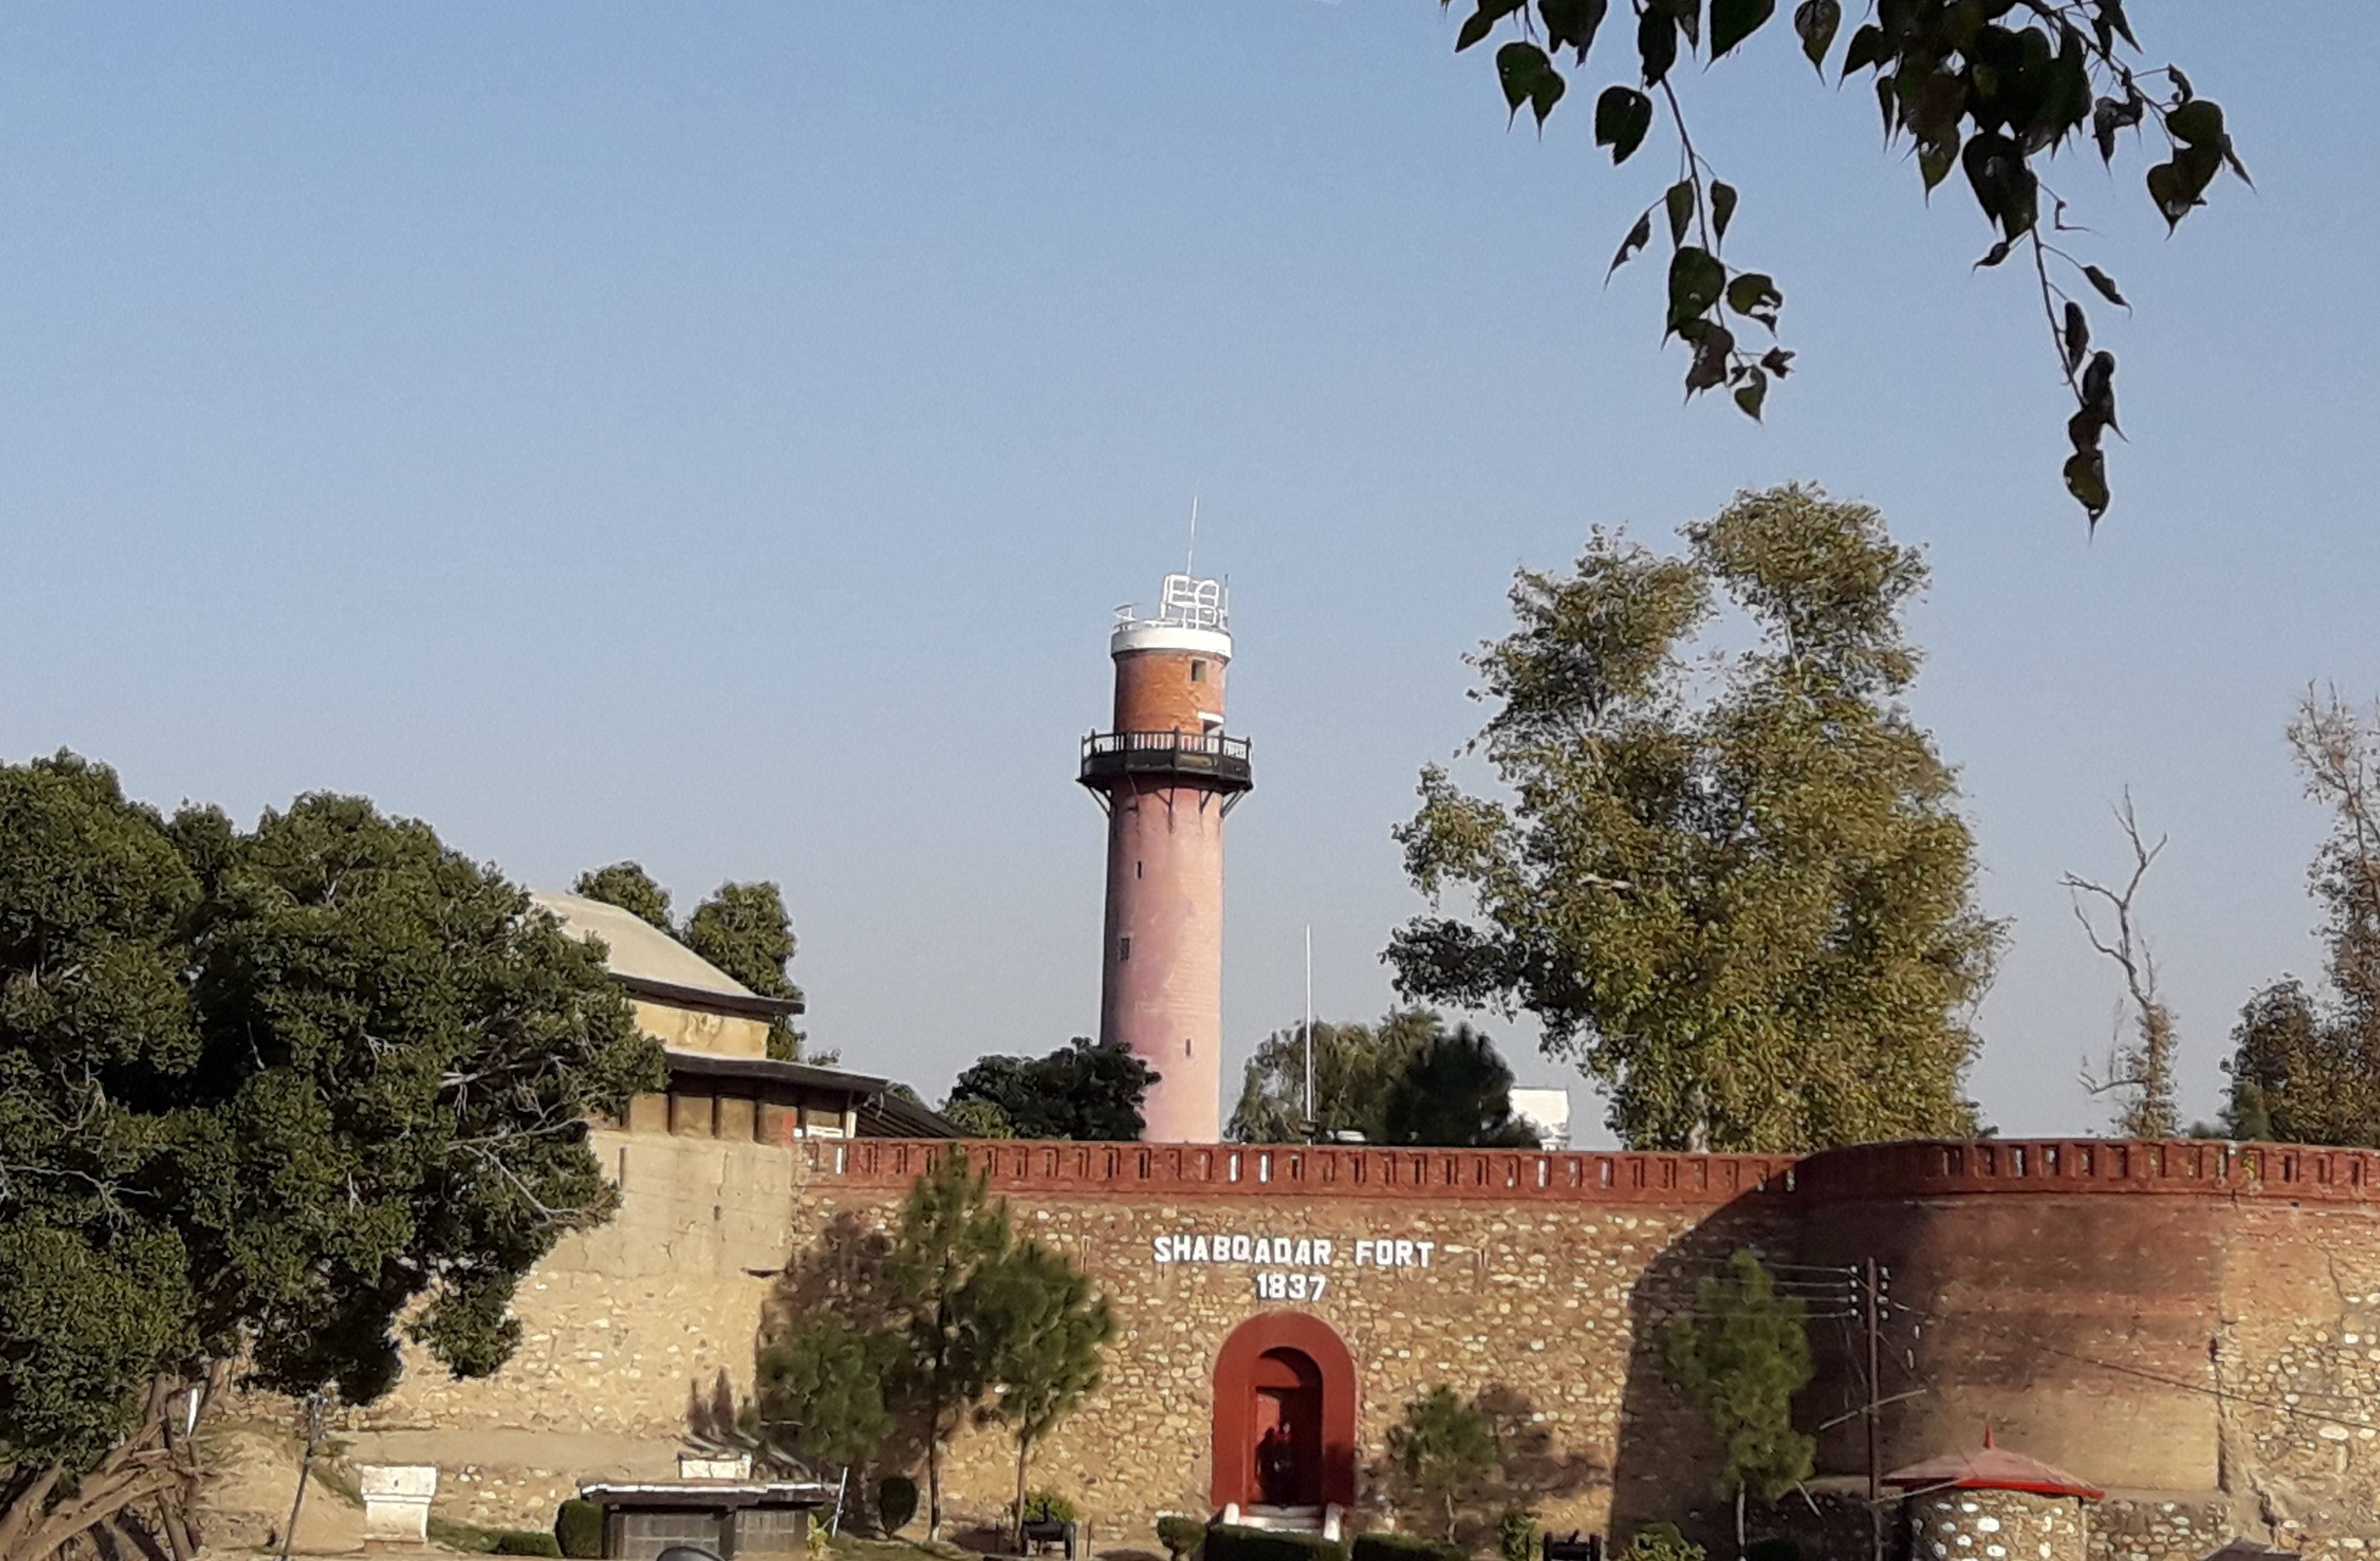 The 1837 Shabqadar Fort is a witness history spanning almost 200 years — from being ruled by the Sikhs to the British and now Muslims.